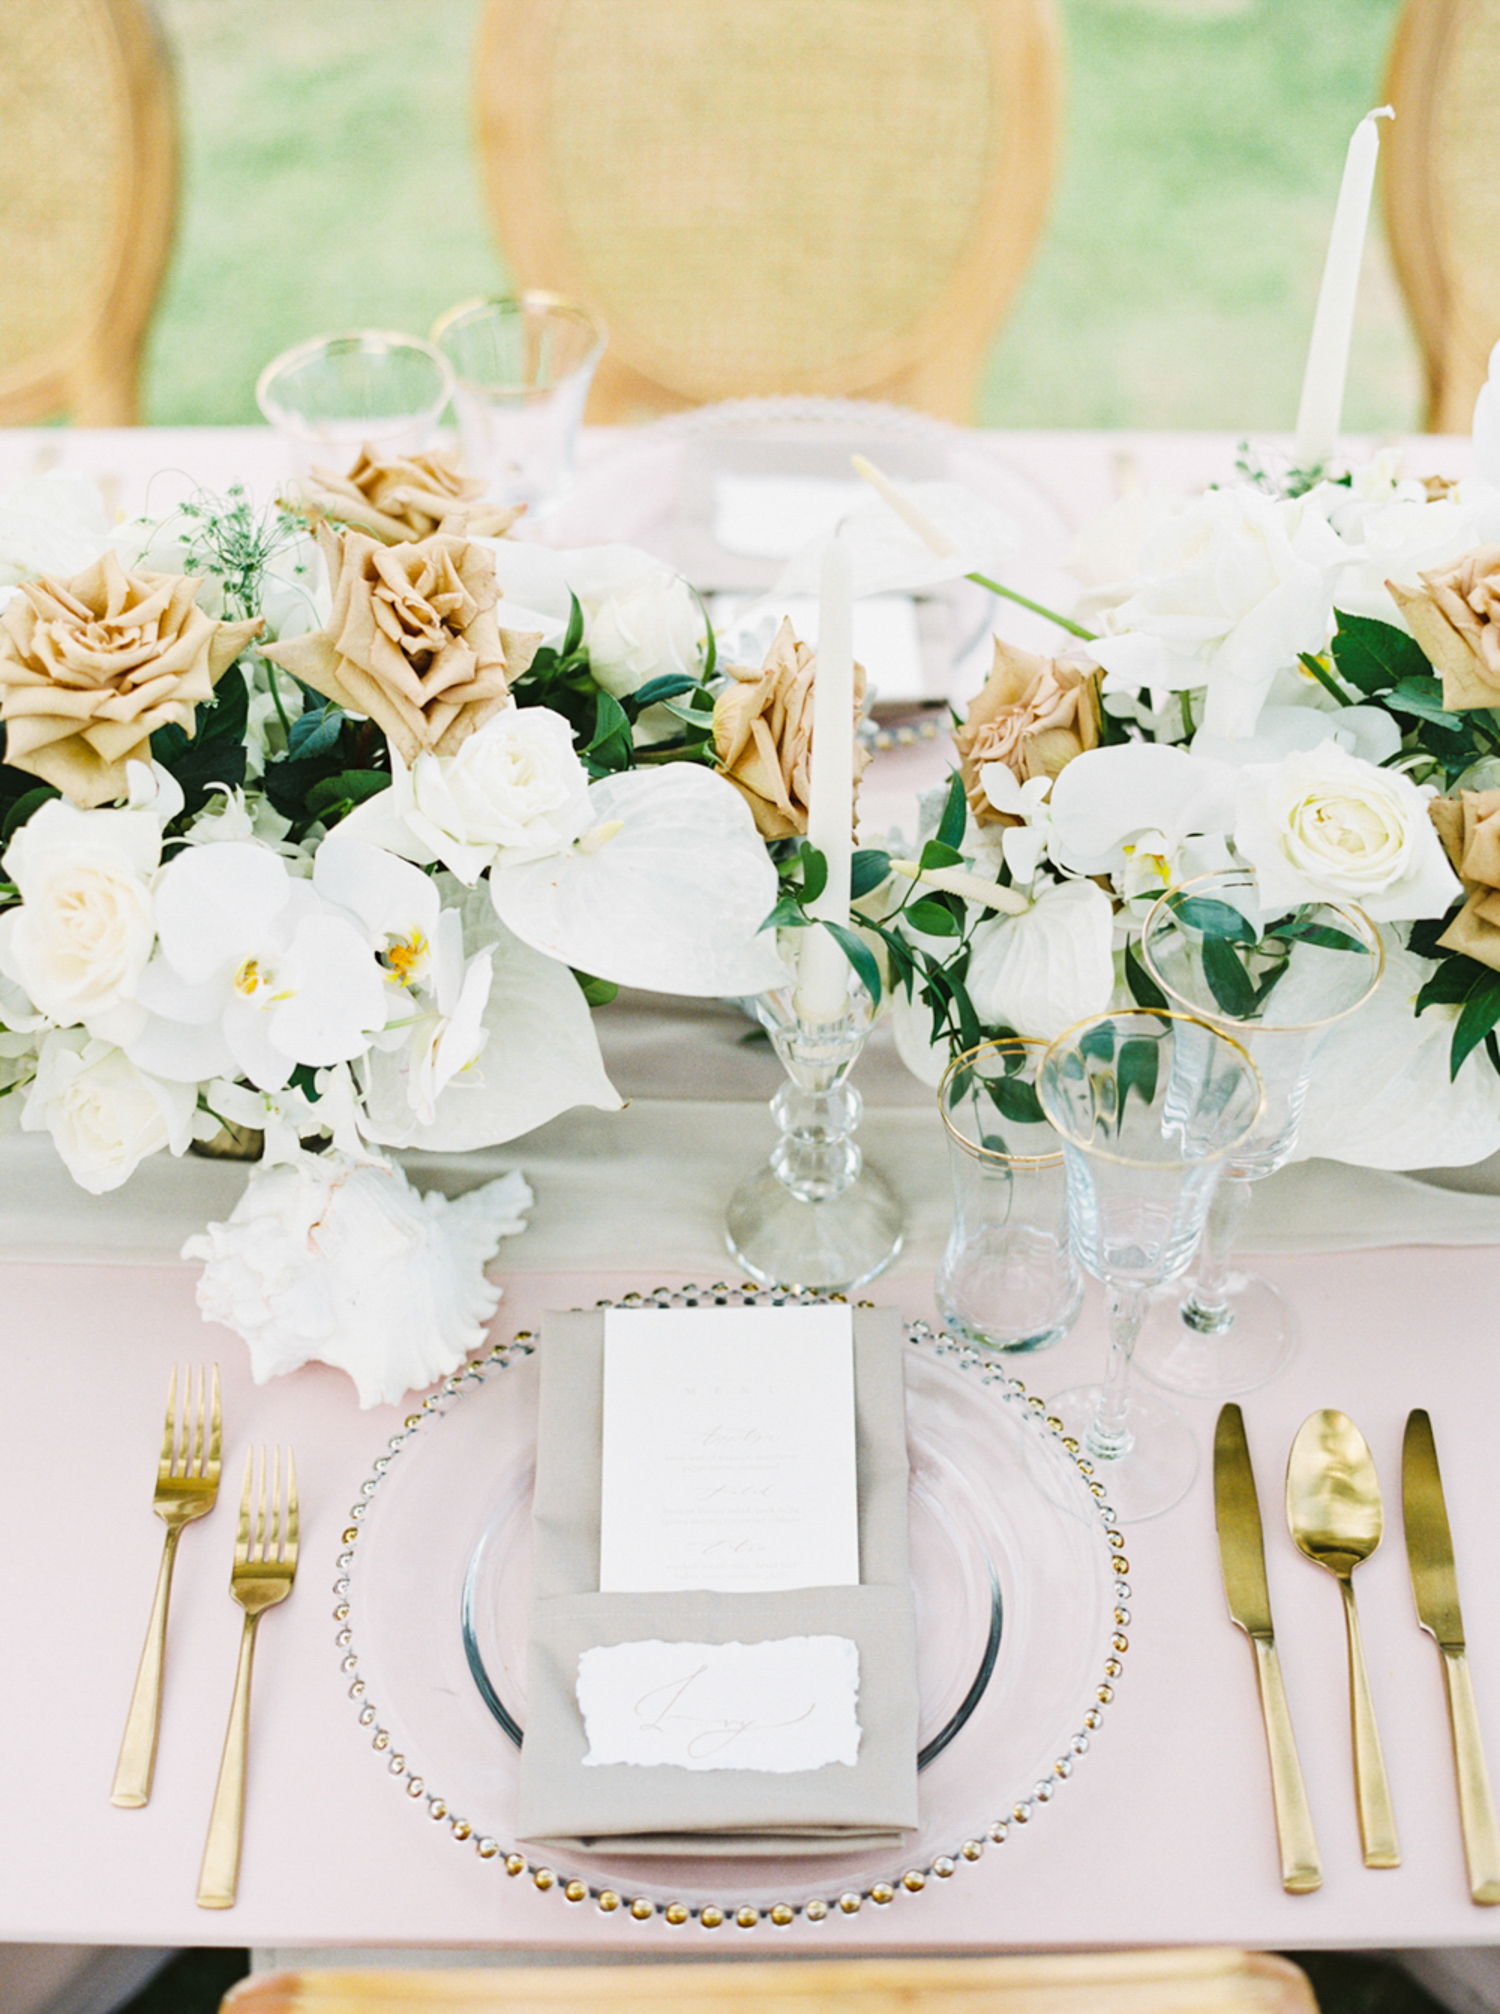 Phuket wedding inspiration exotic and tropical beach wedding ideas in Thailand on fine art film by Sheri McMahon